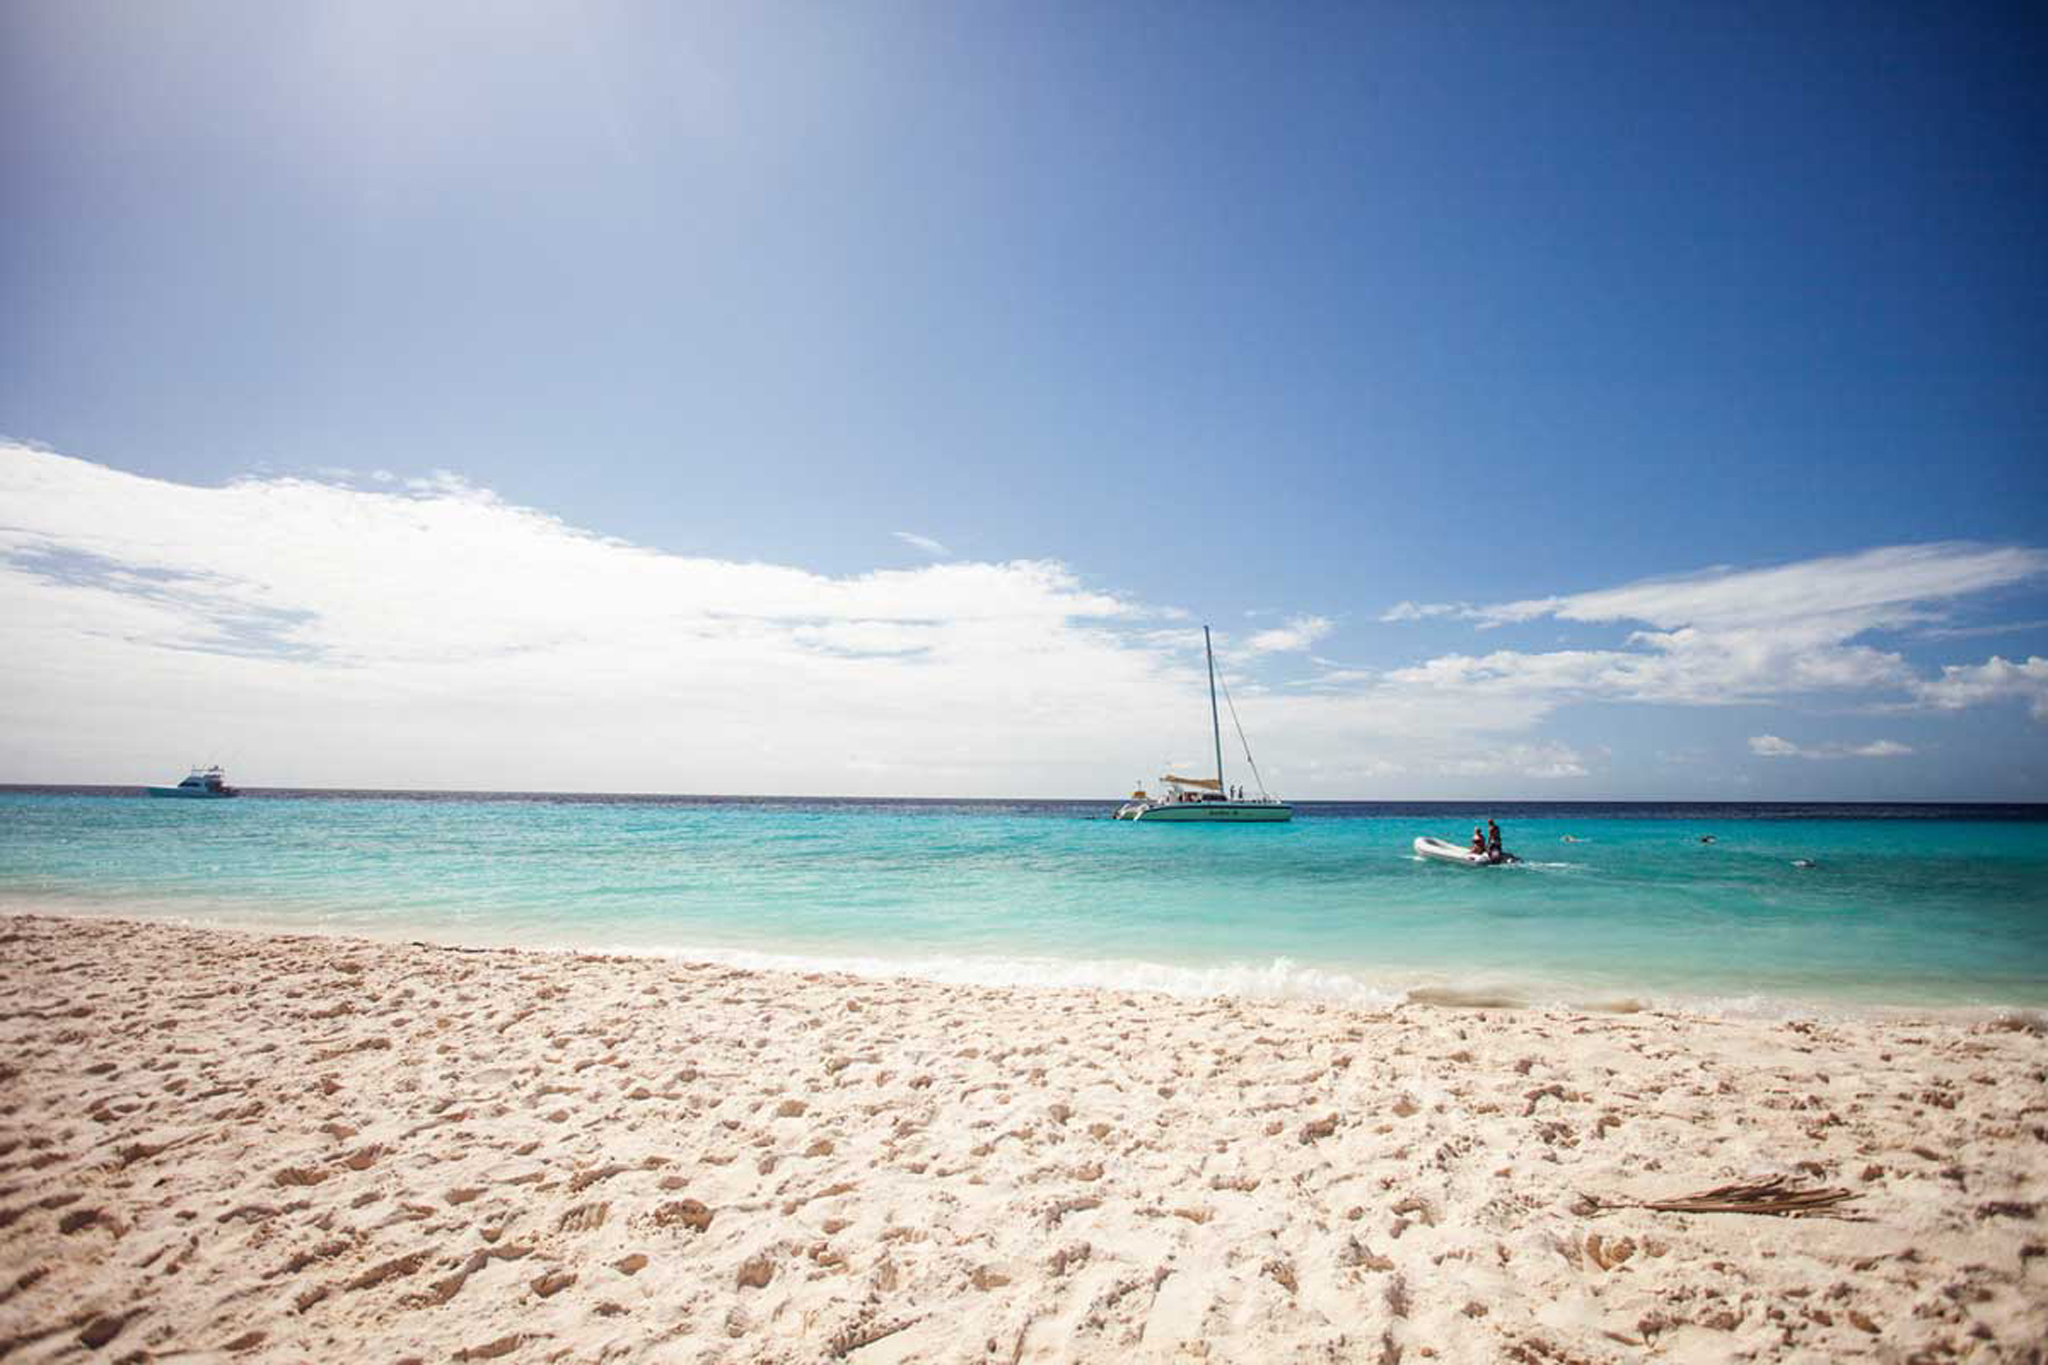 kleincuracao_caribbean_destination_beaches